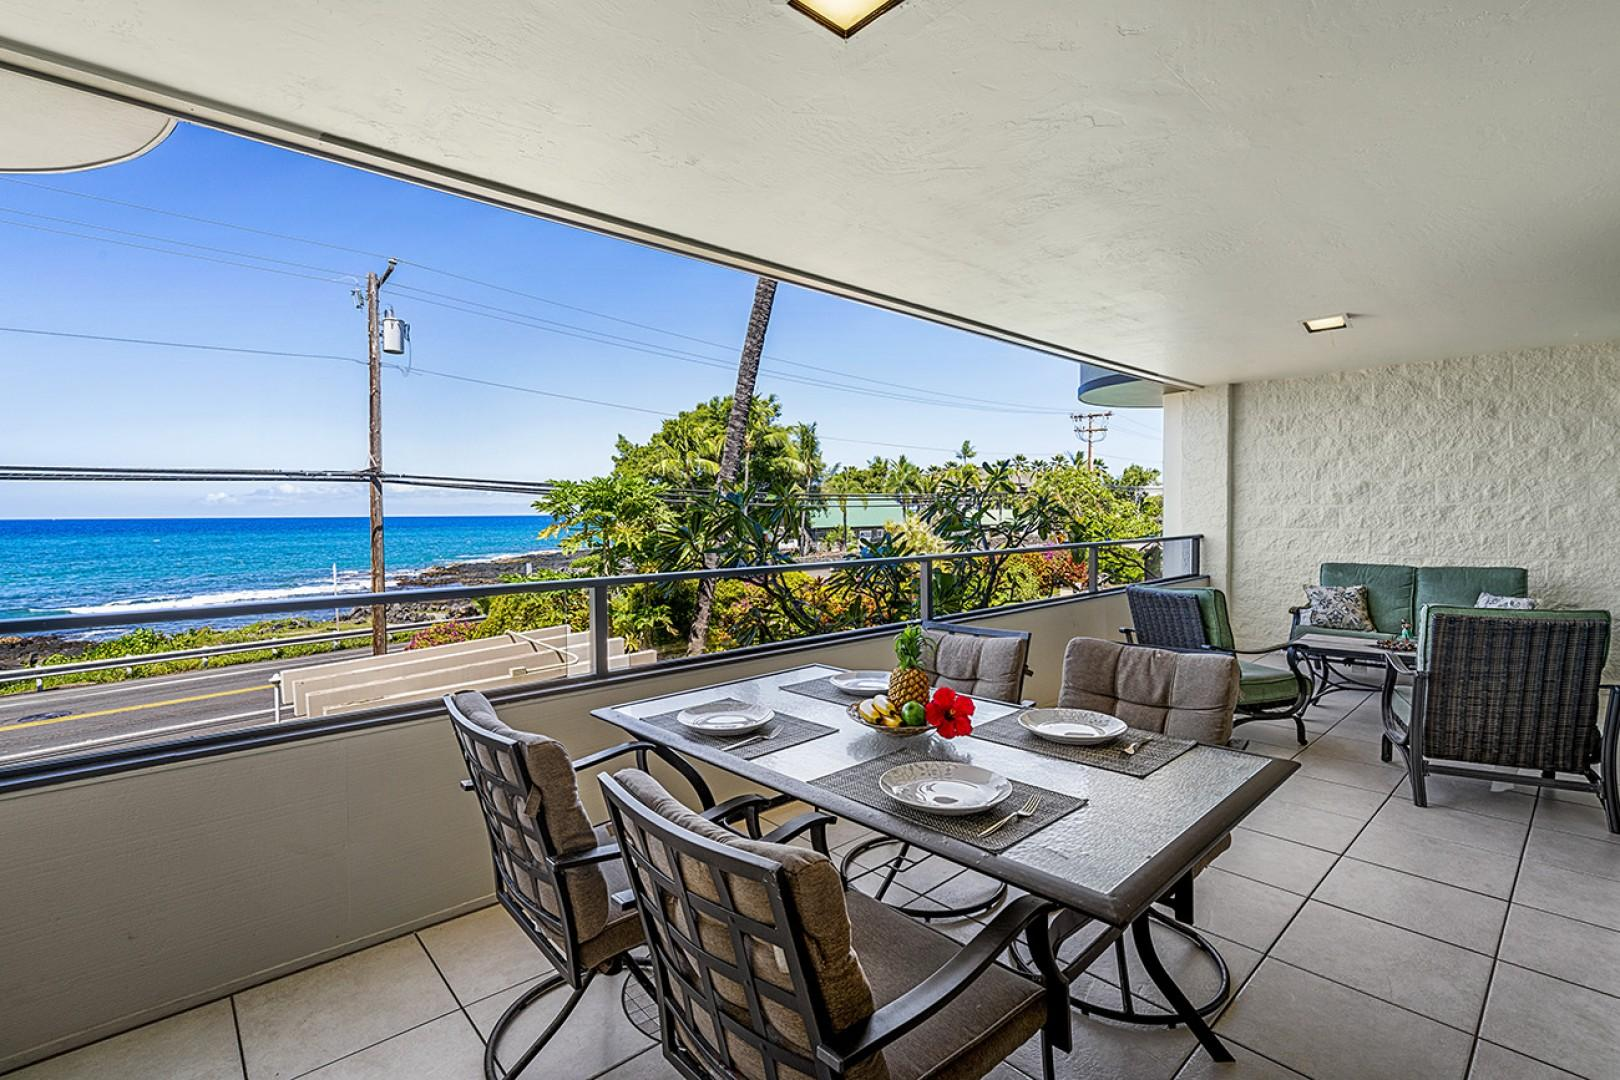 Outdoor dining to take in those ocean breezes!